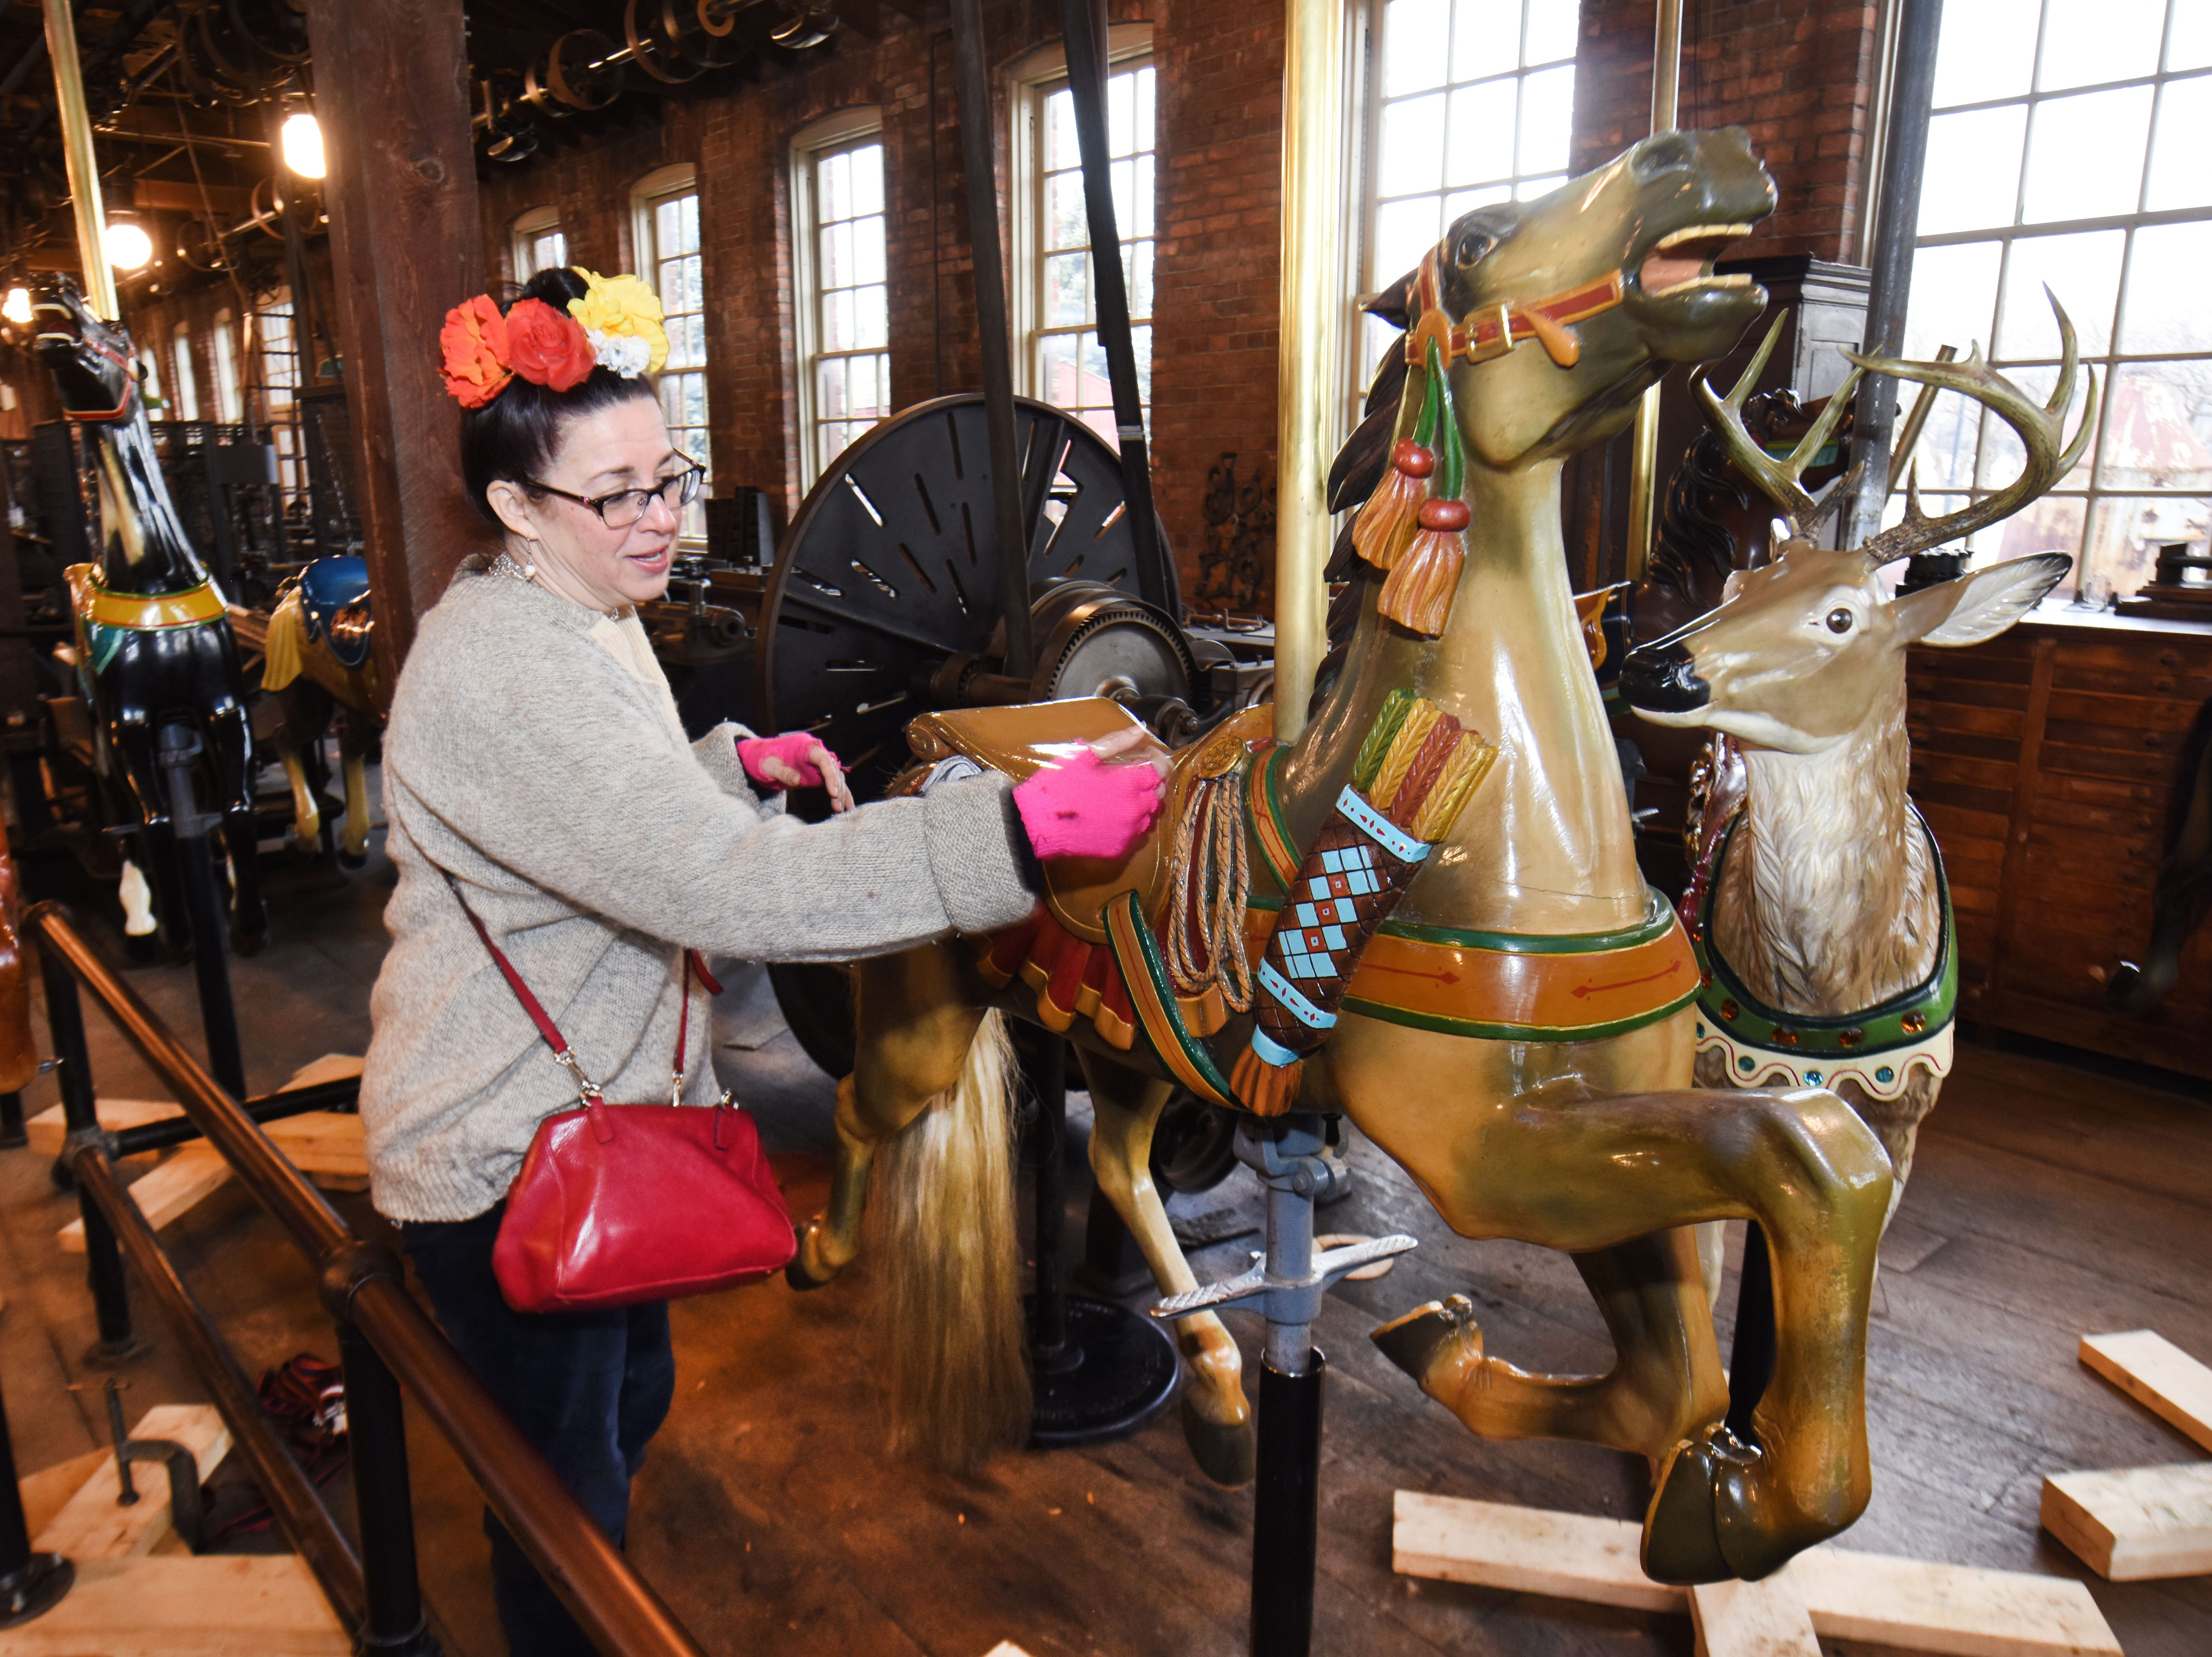 Julie Fournier, historic restoration artist,  looks at one of the many carousel horses as she works on at Greenfield Village's Armington & Sims machine shop.